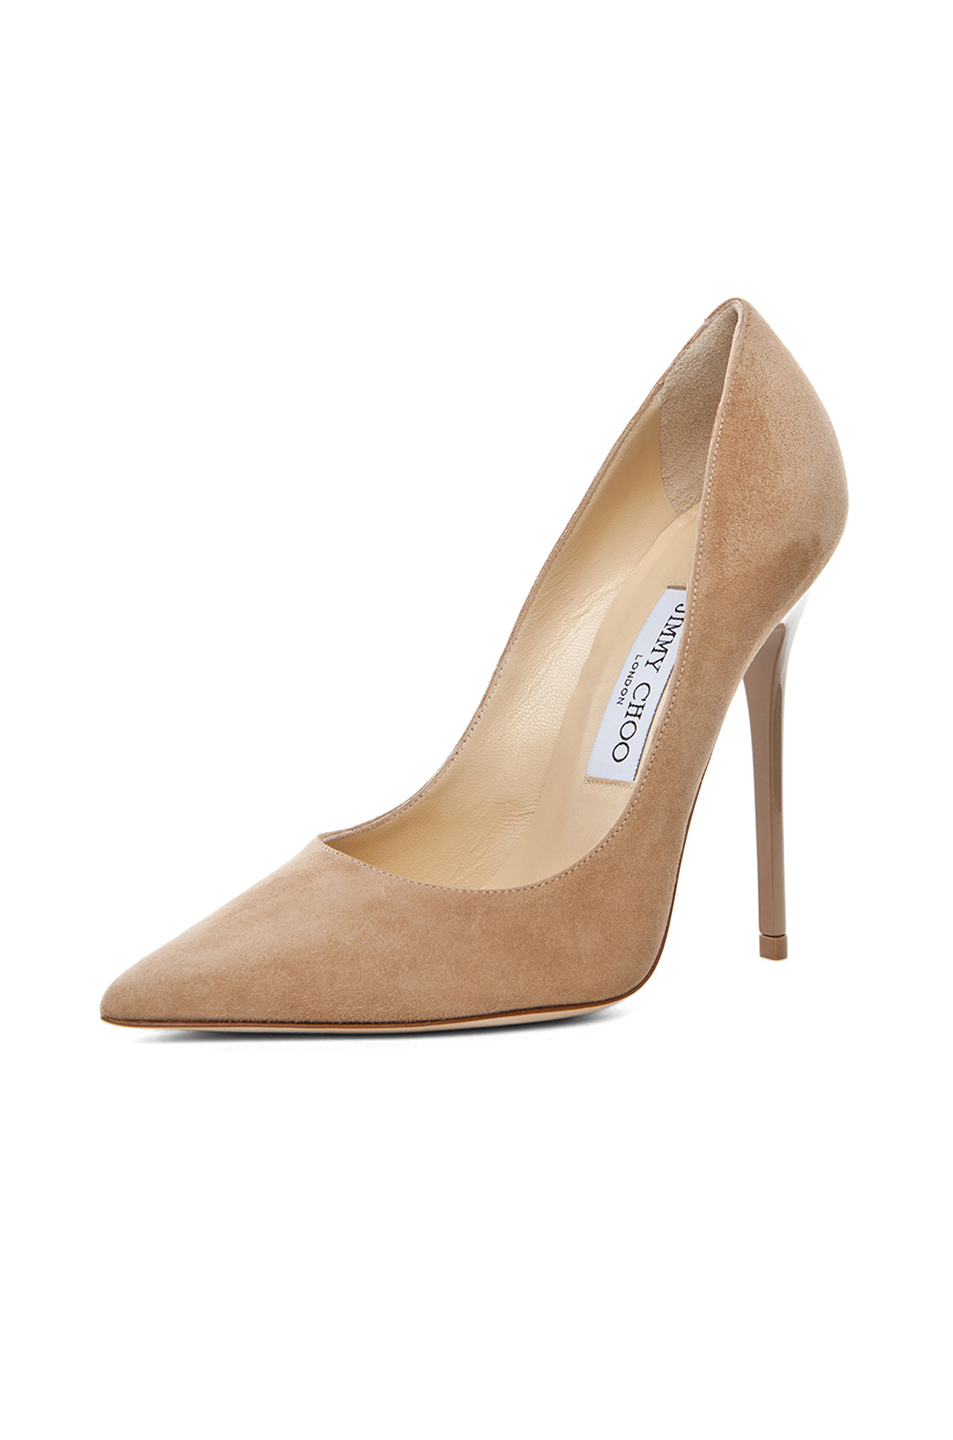 60ce81f6f583 Buy Original Jimmy Choo Anouk Suede Pumps at Indonesia ...